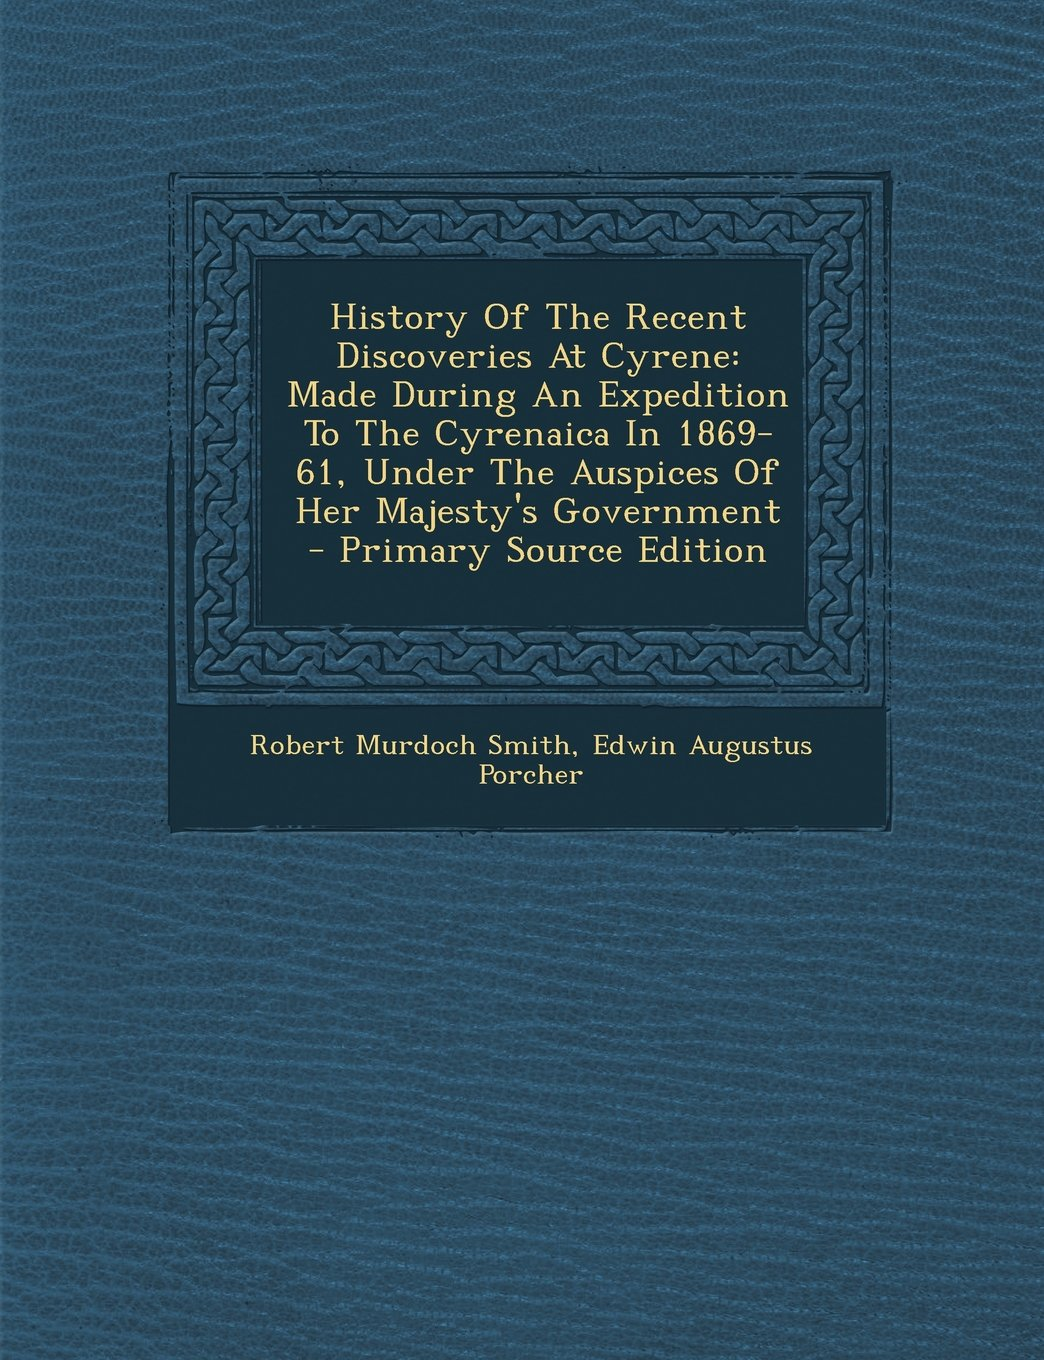 History Of The Recent Discoveries At Cyrene: Made During An Expedition To The Cyrenaica In 1869-61, Under The Auspices Of Her Majesty's Government - Primary Source Edition pdf epub